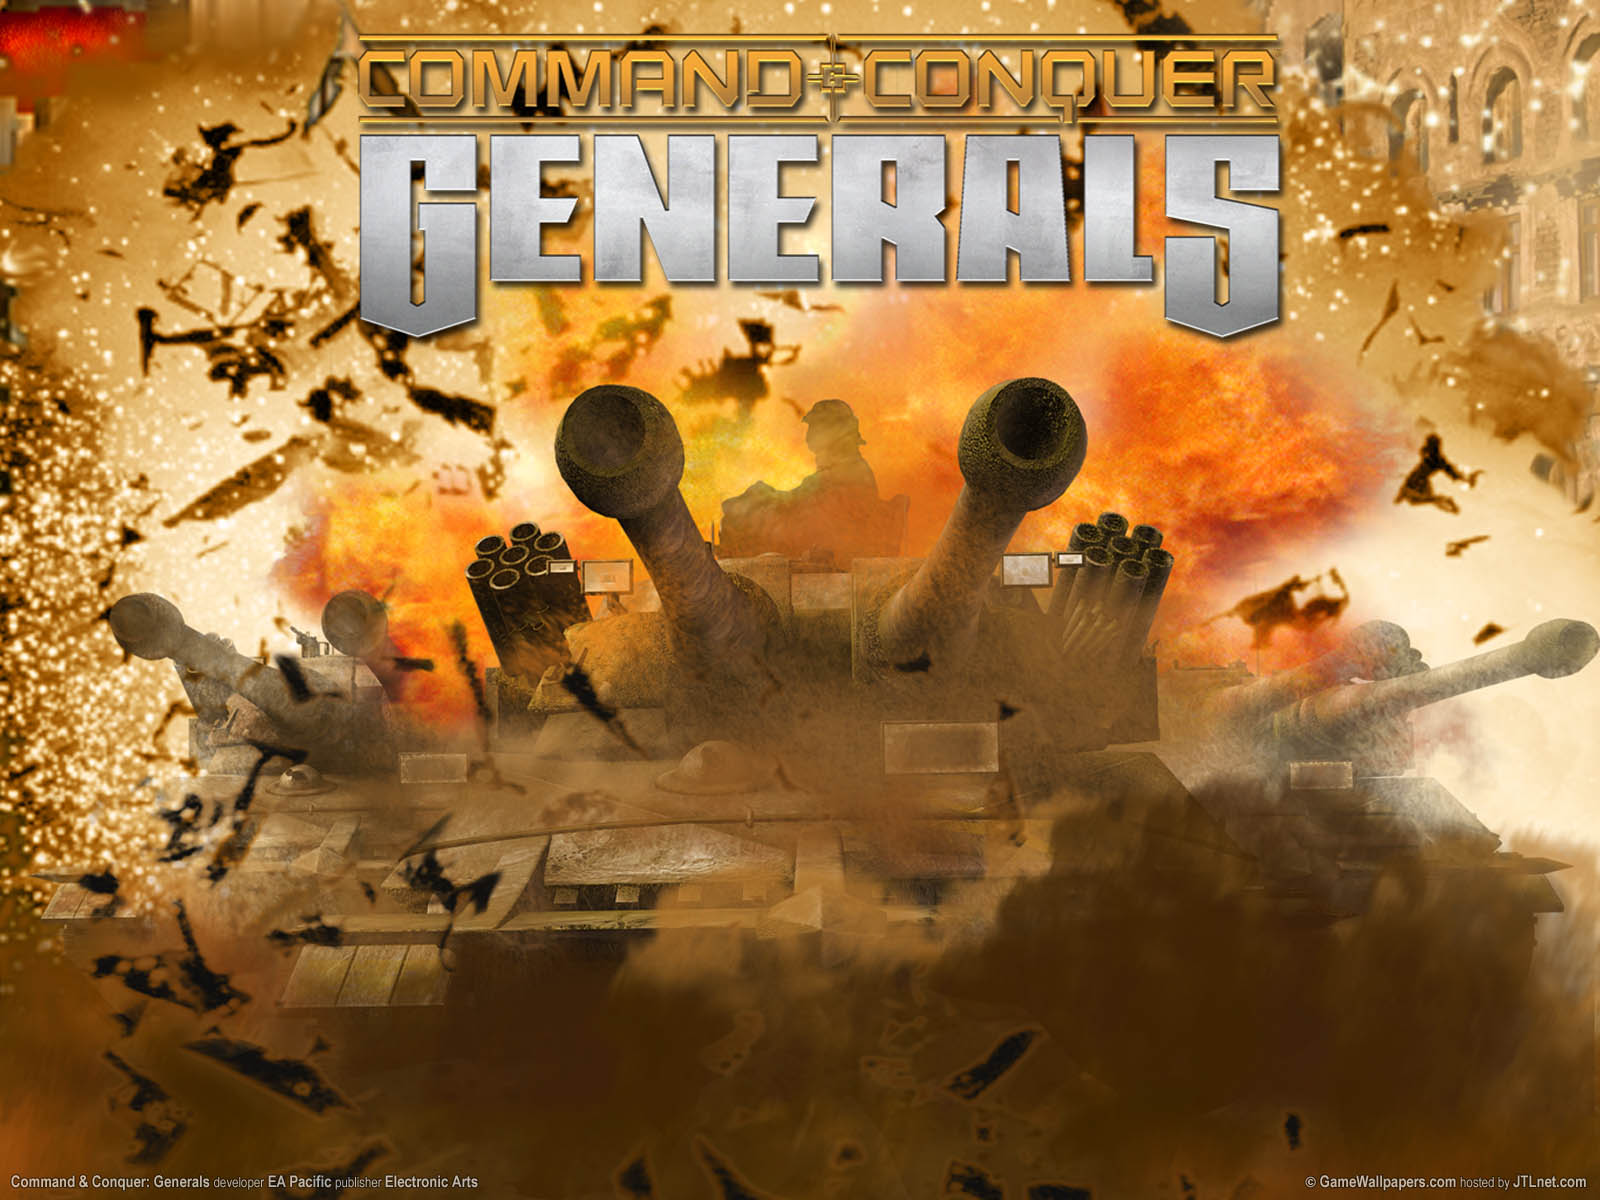 Command and Conquer: Generalsνmmer=01 achtergrond  1600x1200